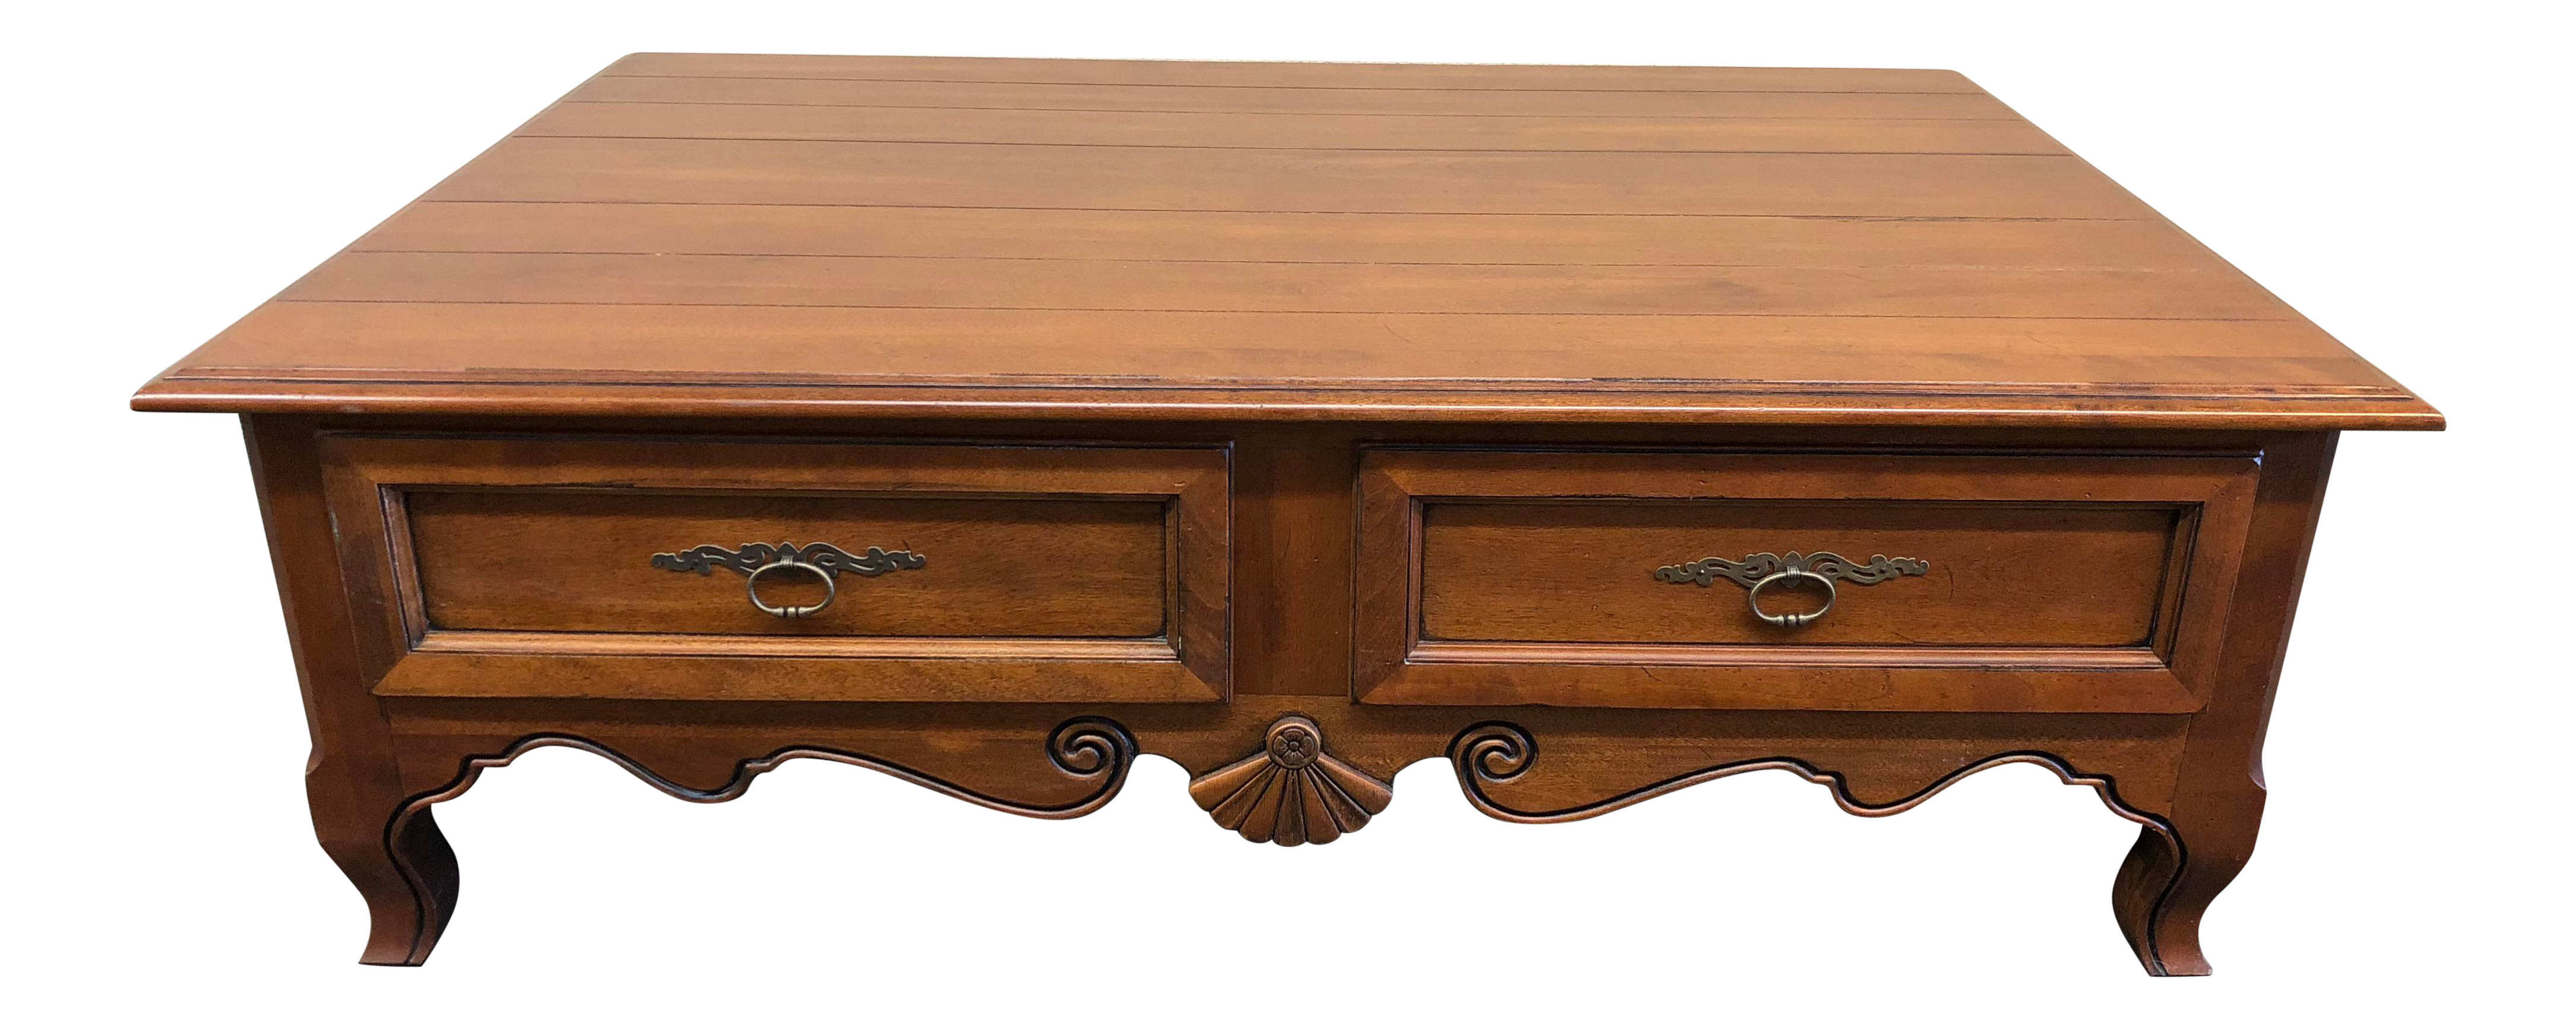 Ethan Allen Traditional Carved Wood Cocktail Table